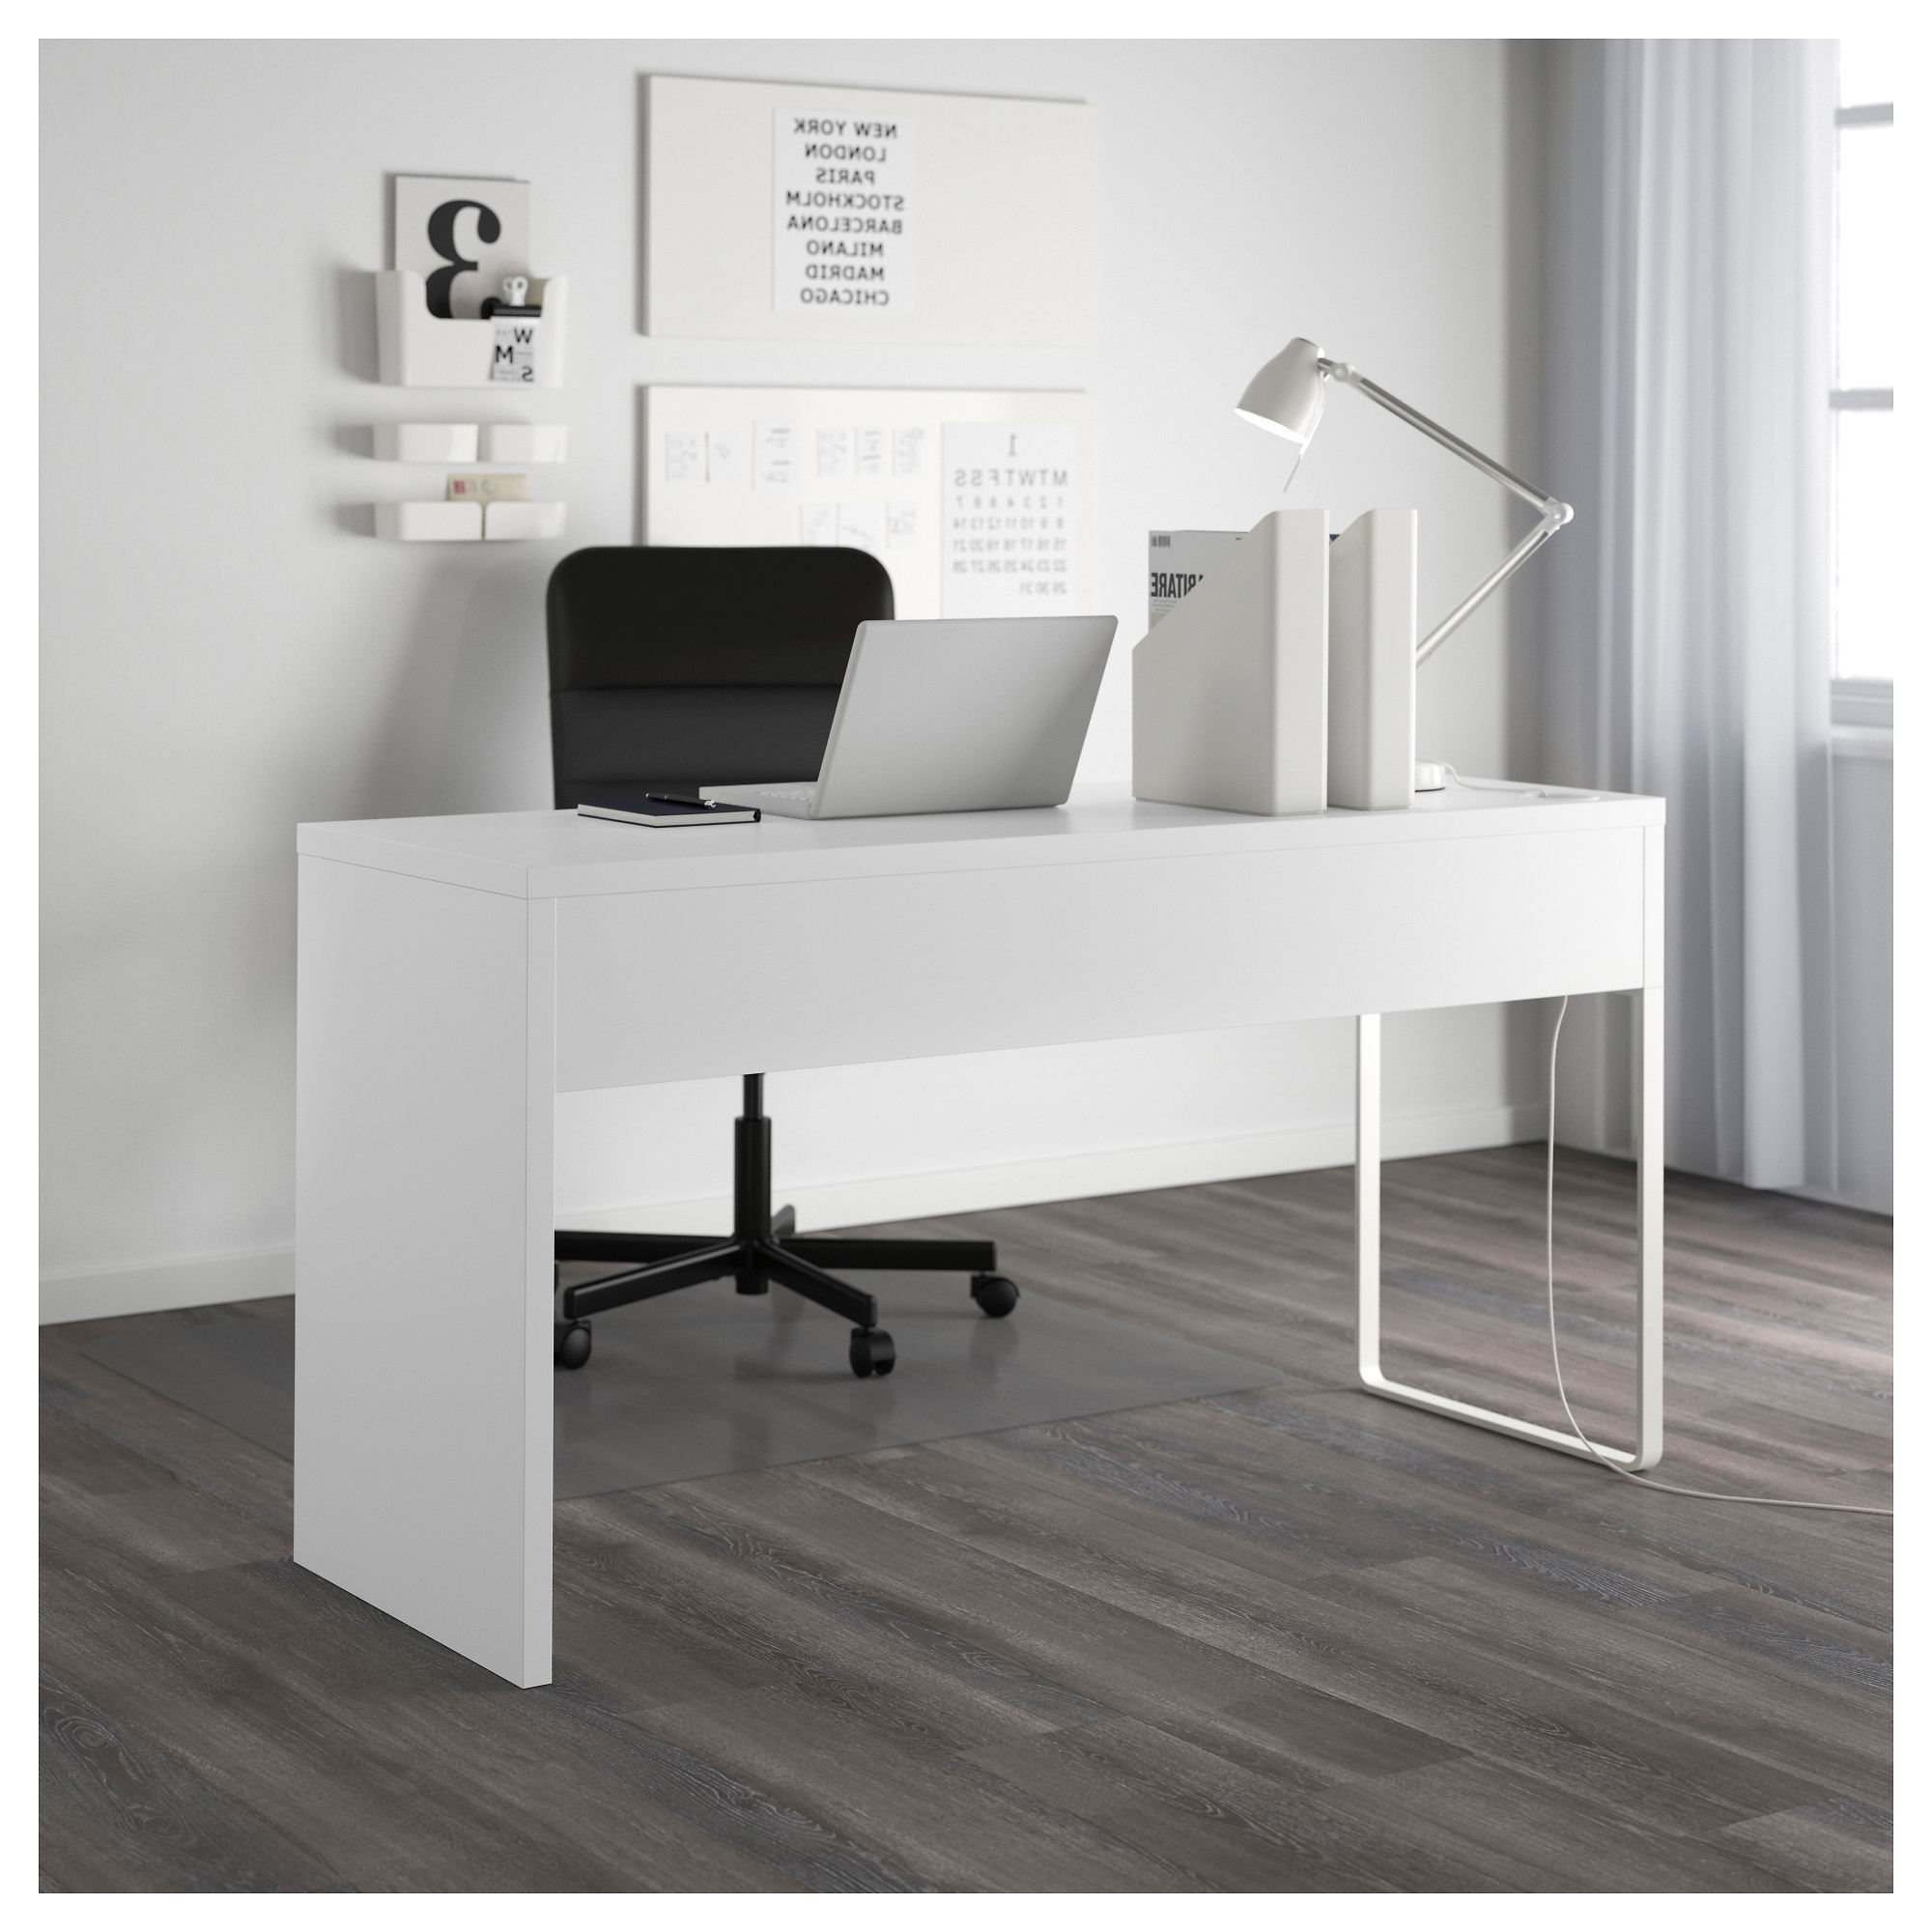 Most Up To Date Computer Desks In White Throughout Micke Desk – White – Ikea (View 16 of 20)